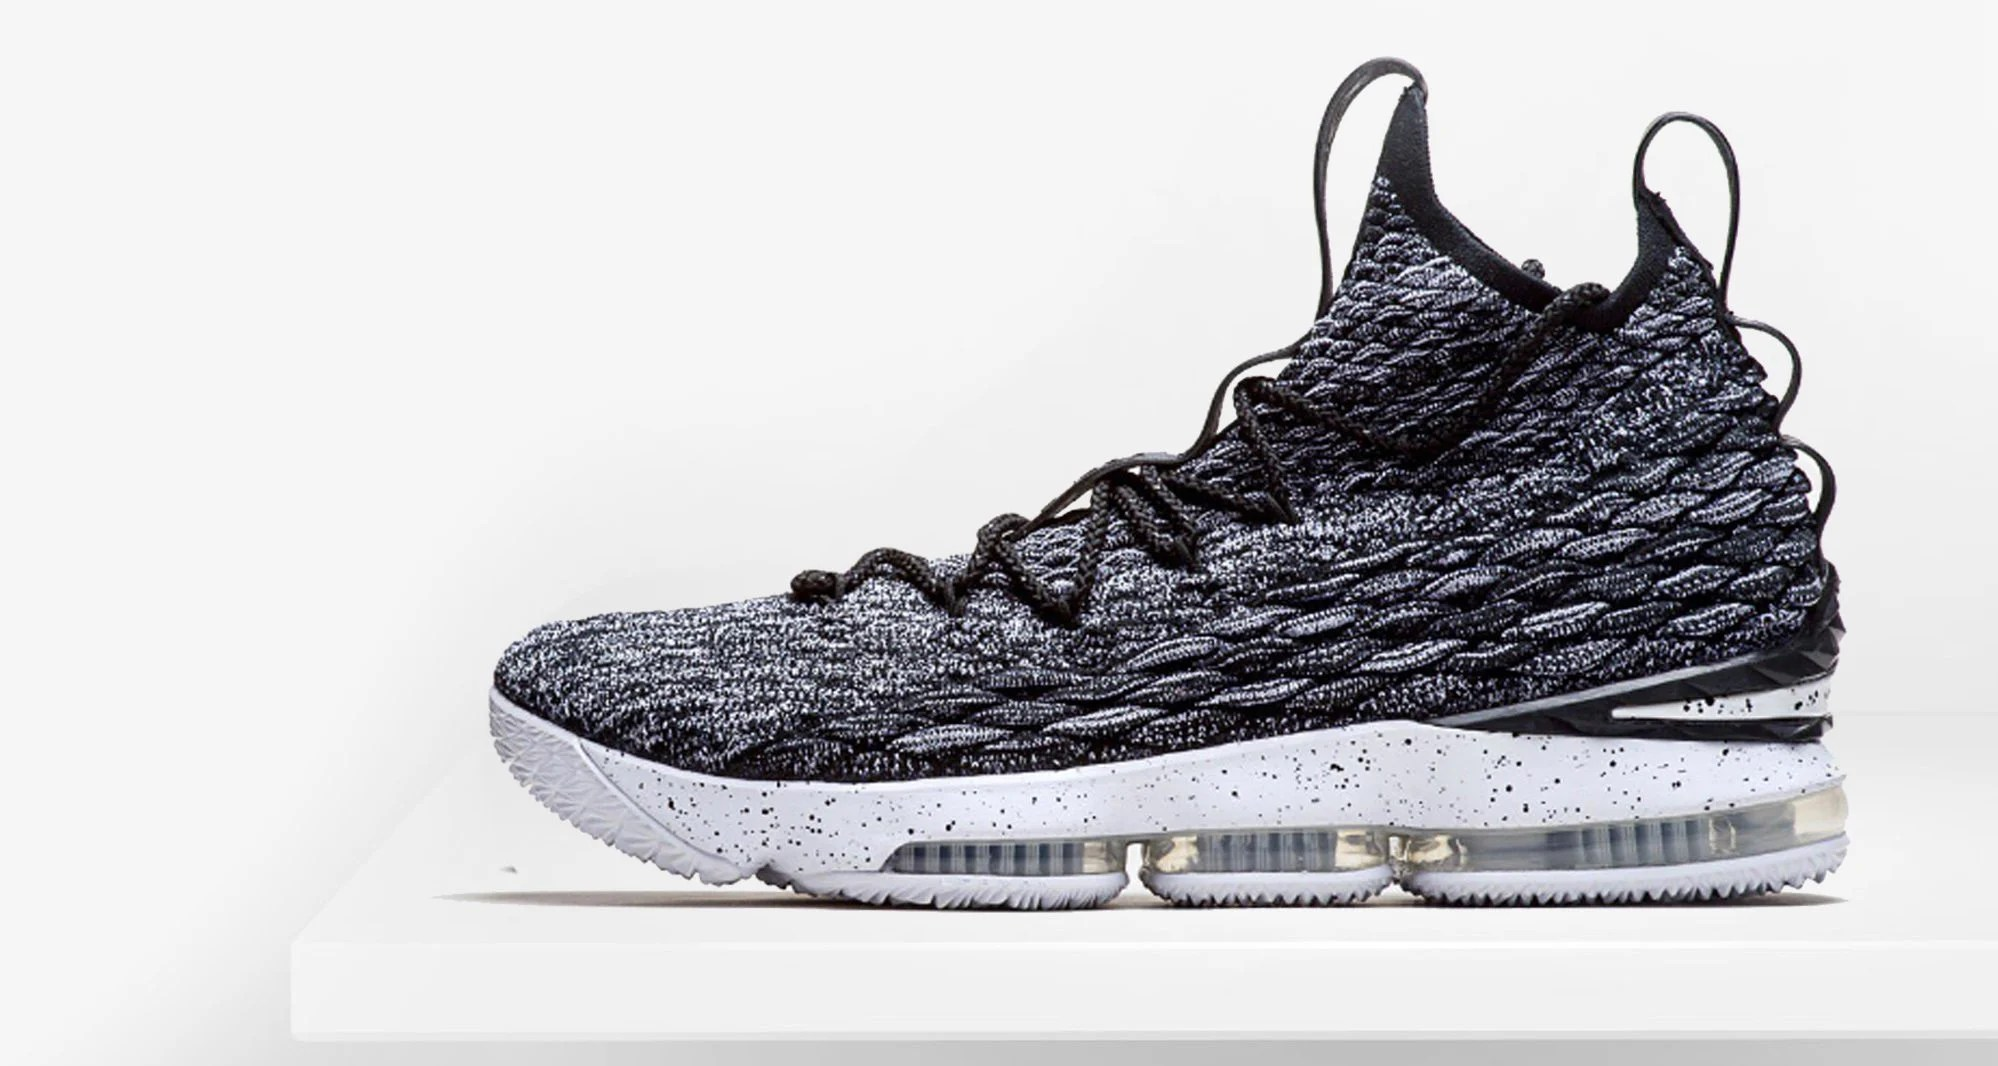 ae39dd70efe76 Another Look at the Nike LeBron 15